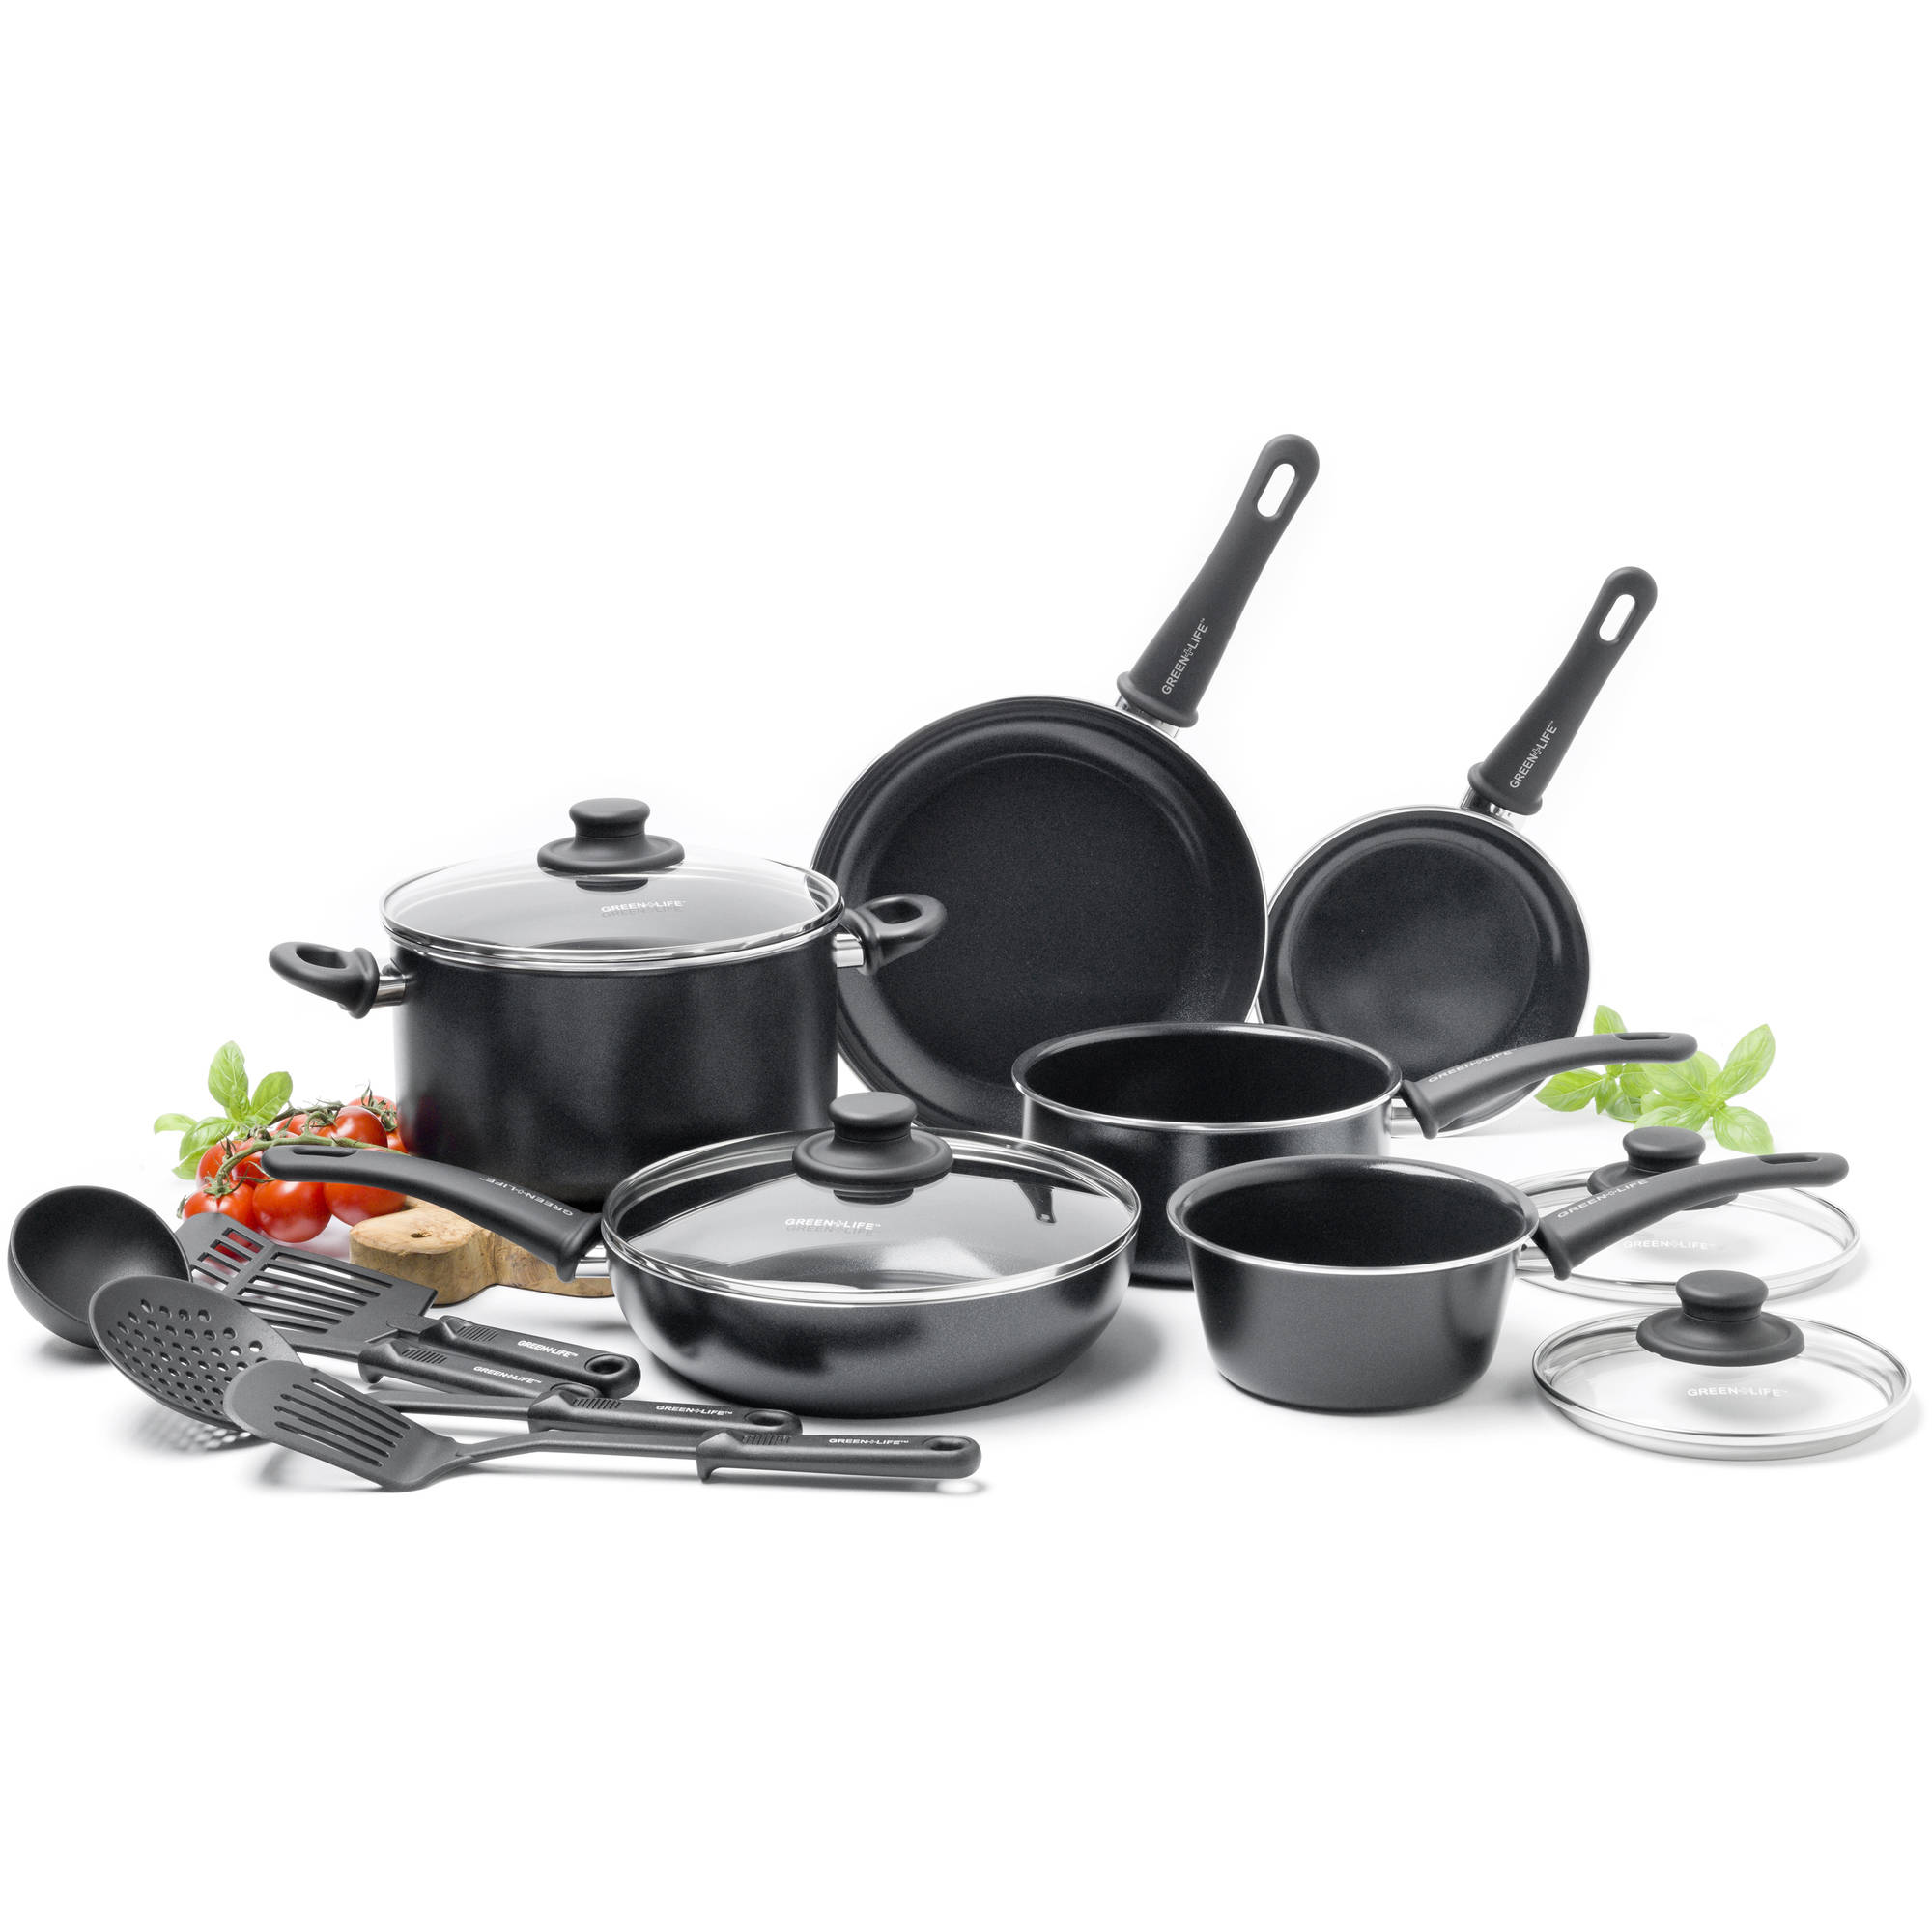 GreenLife Healthy Ceramic Diamond Reinforced Non-Stick 14-Piece Soft Grip Cookware Set